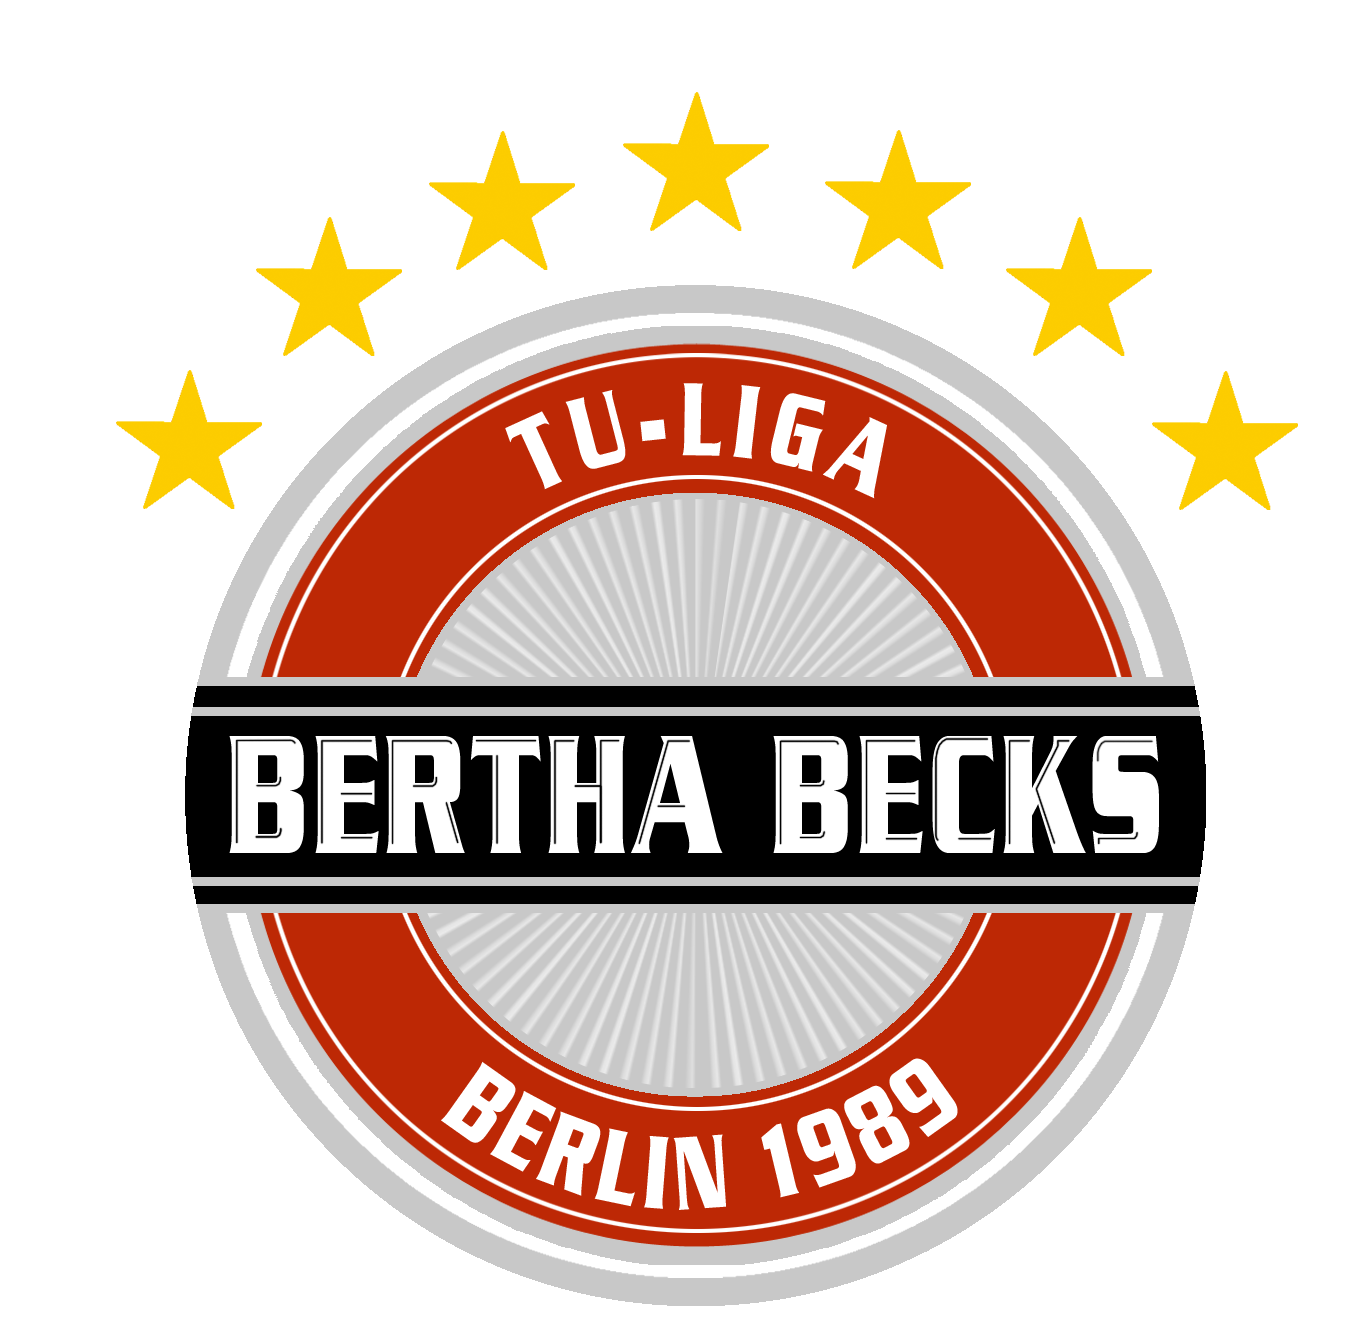 Bertha Becks - 1. Berliner Uniliga